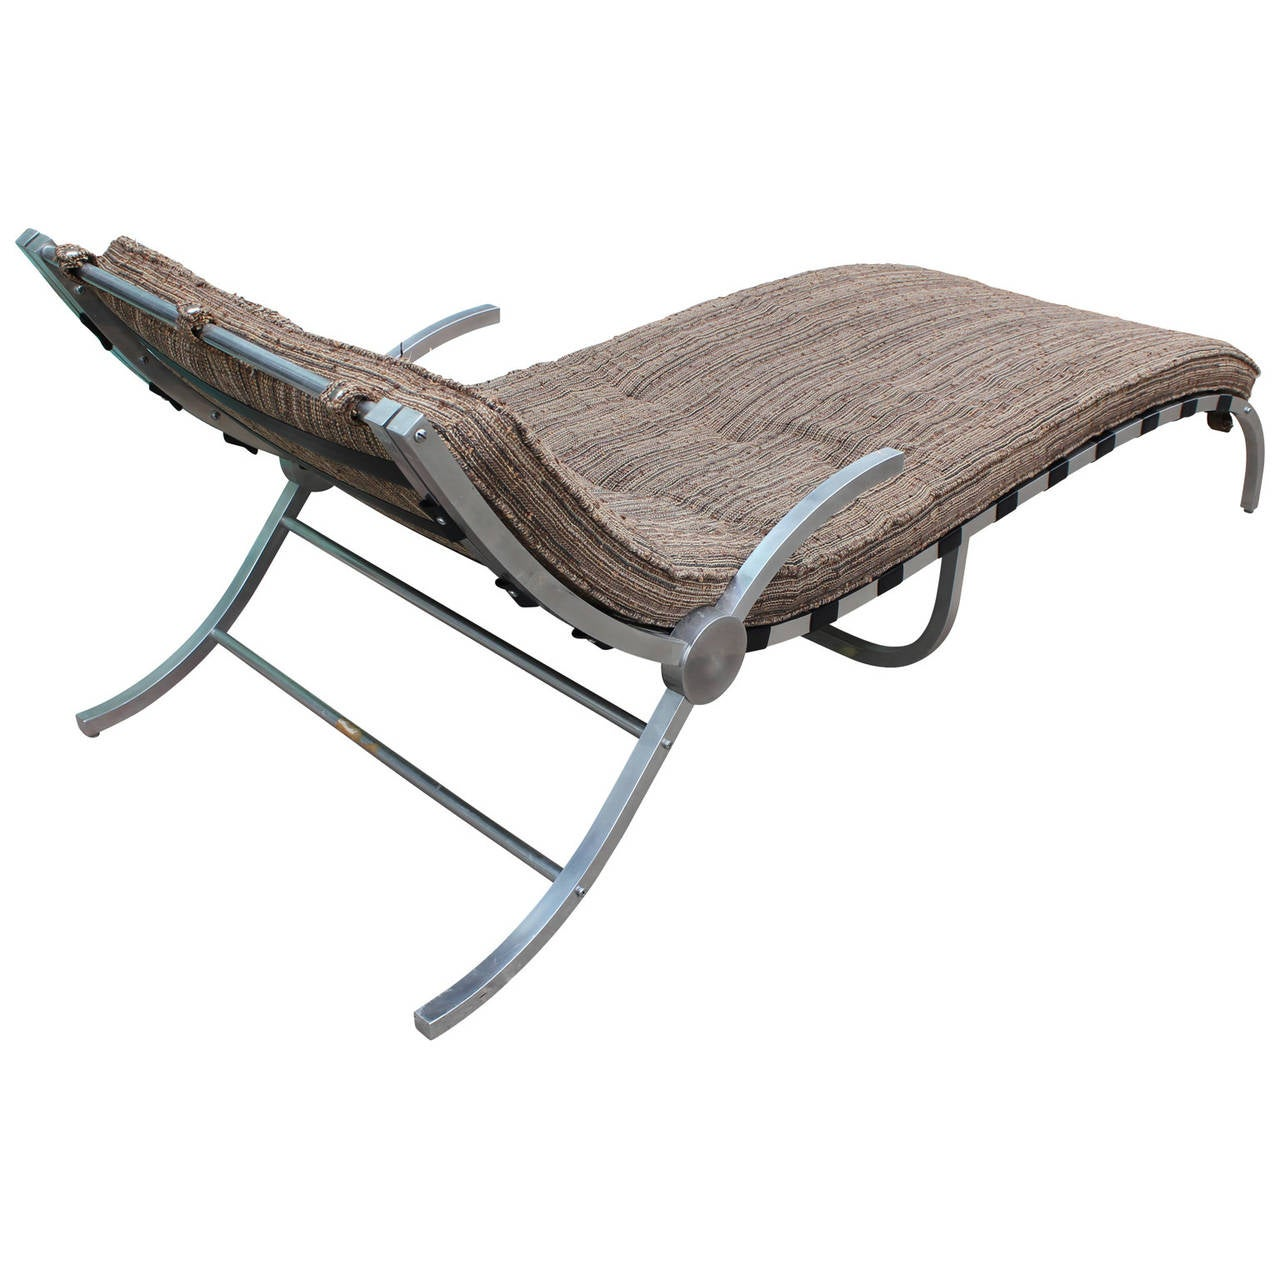 Sculptural Mid Century Modern Aluminum Chaise Lounge For Sale at 1stdibs